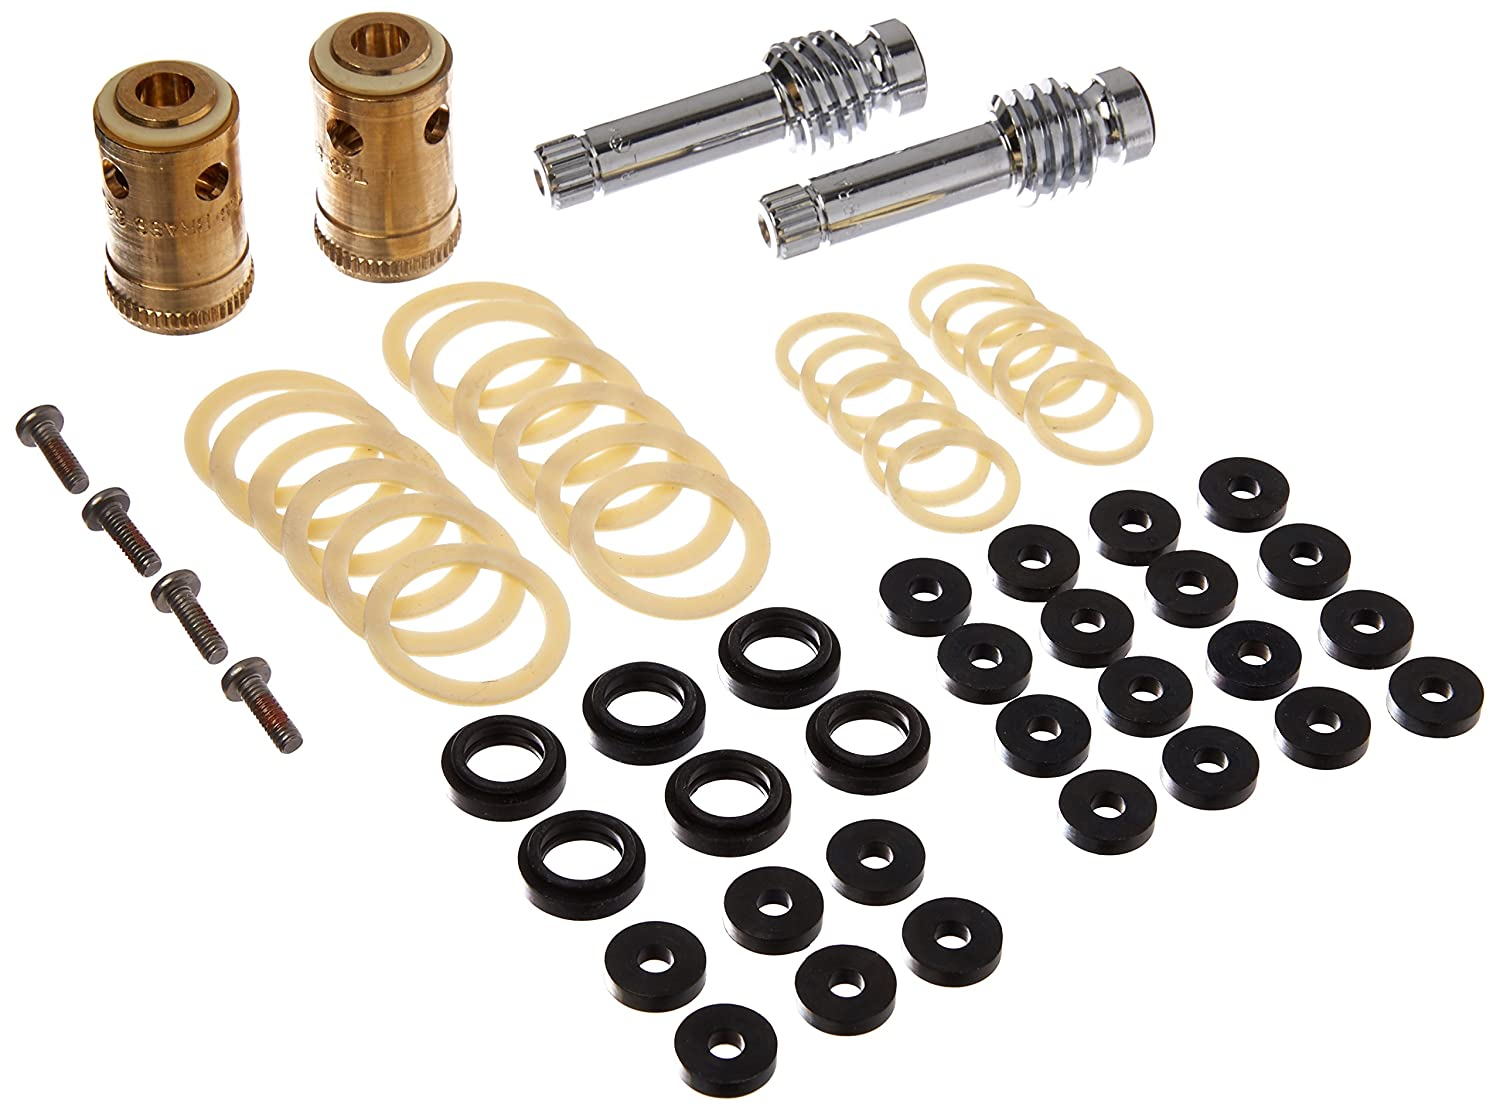 T&S Brass B-6K Job Parts Kit for Eterna Cartr - Faucet Aerators And ...